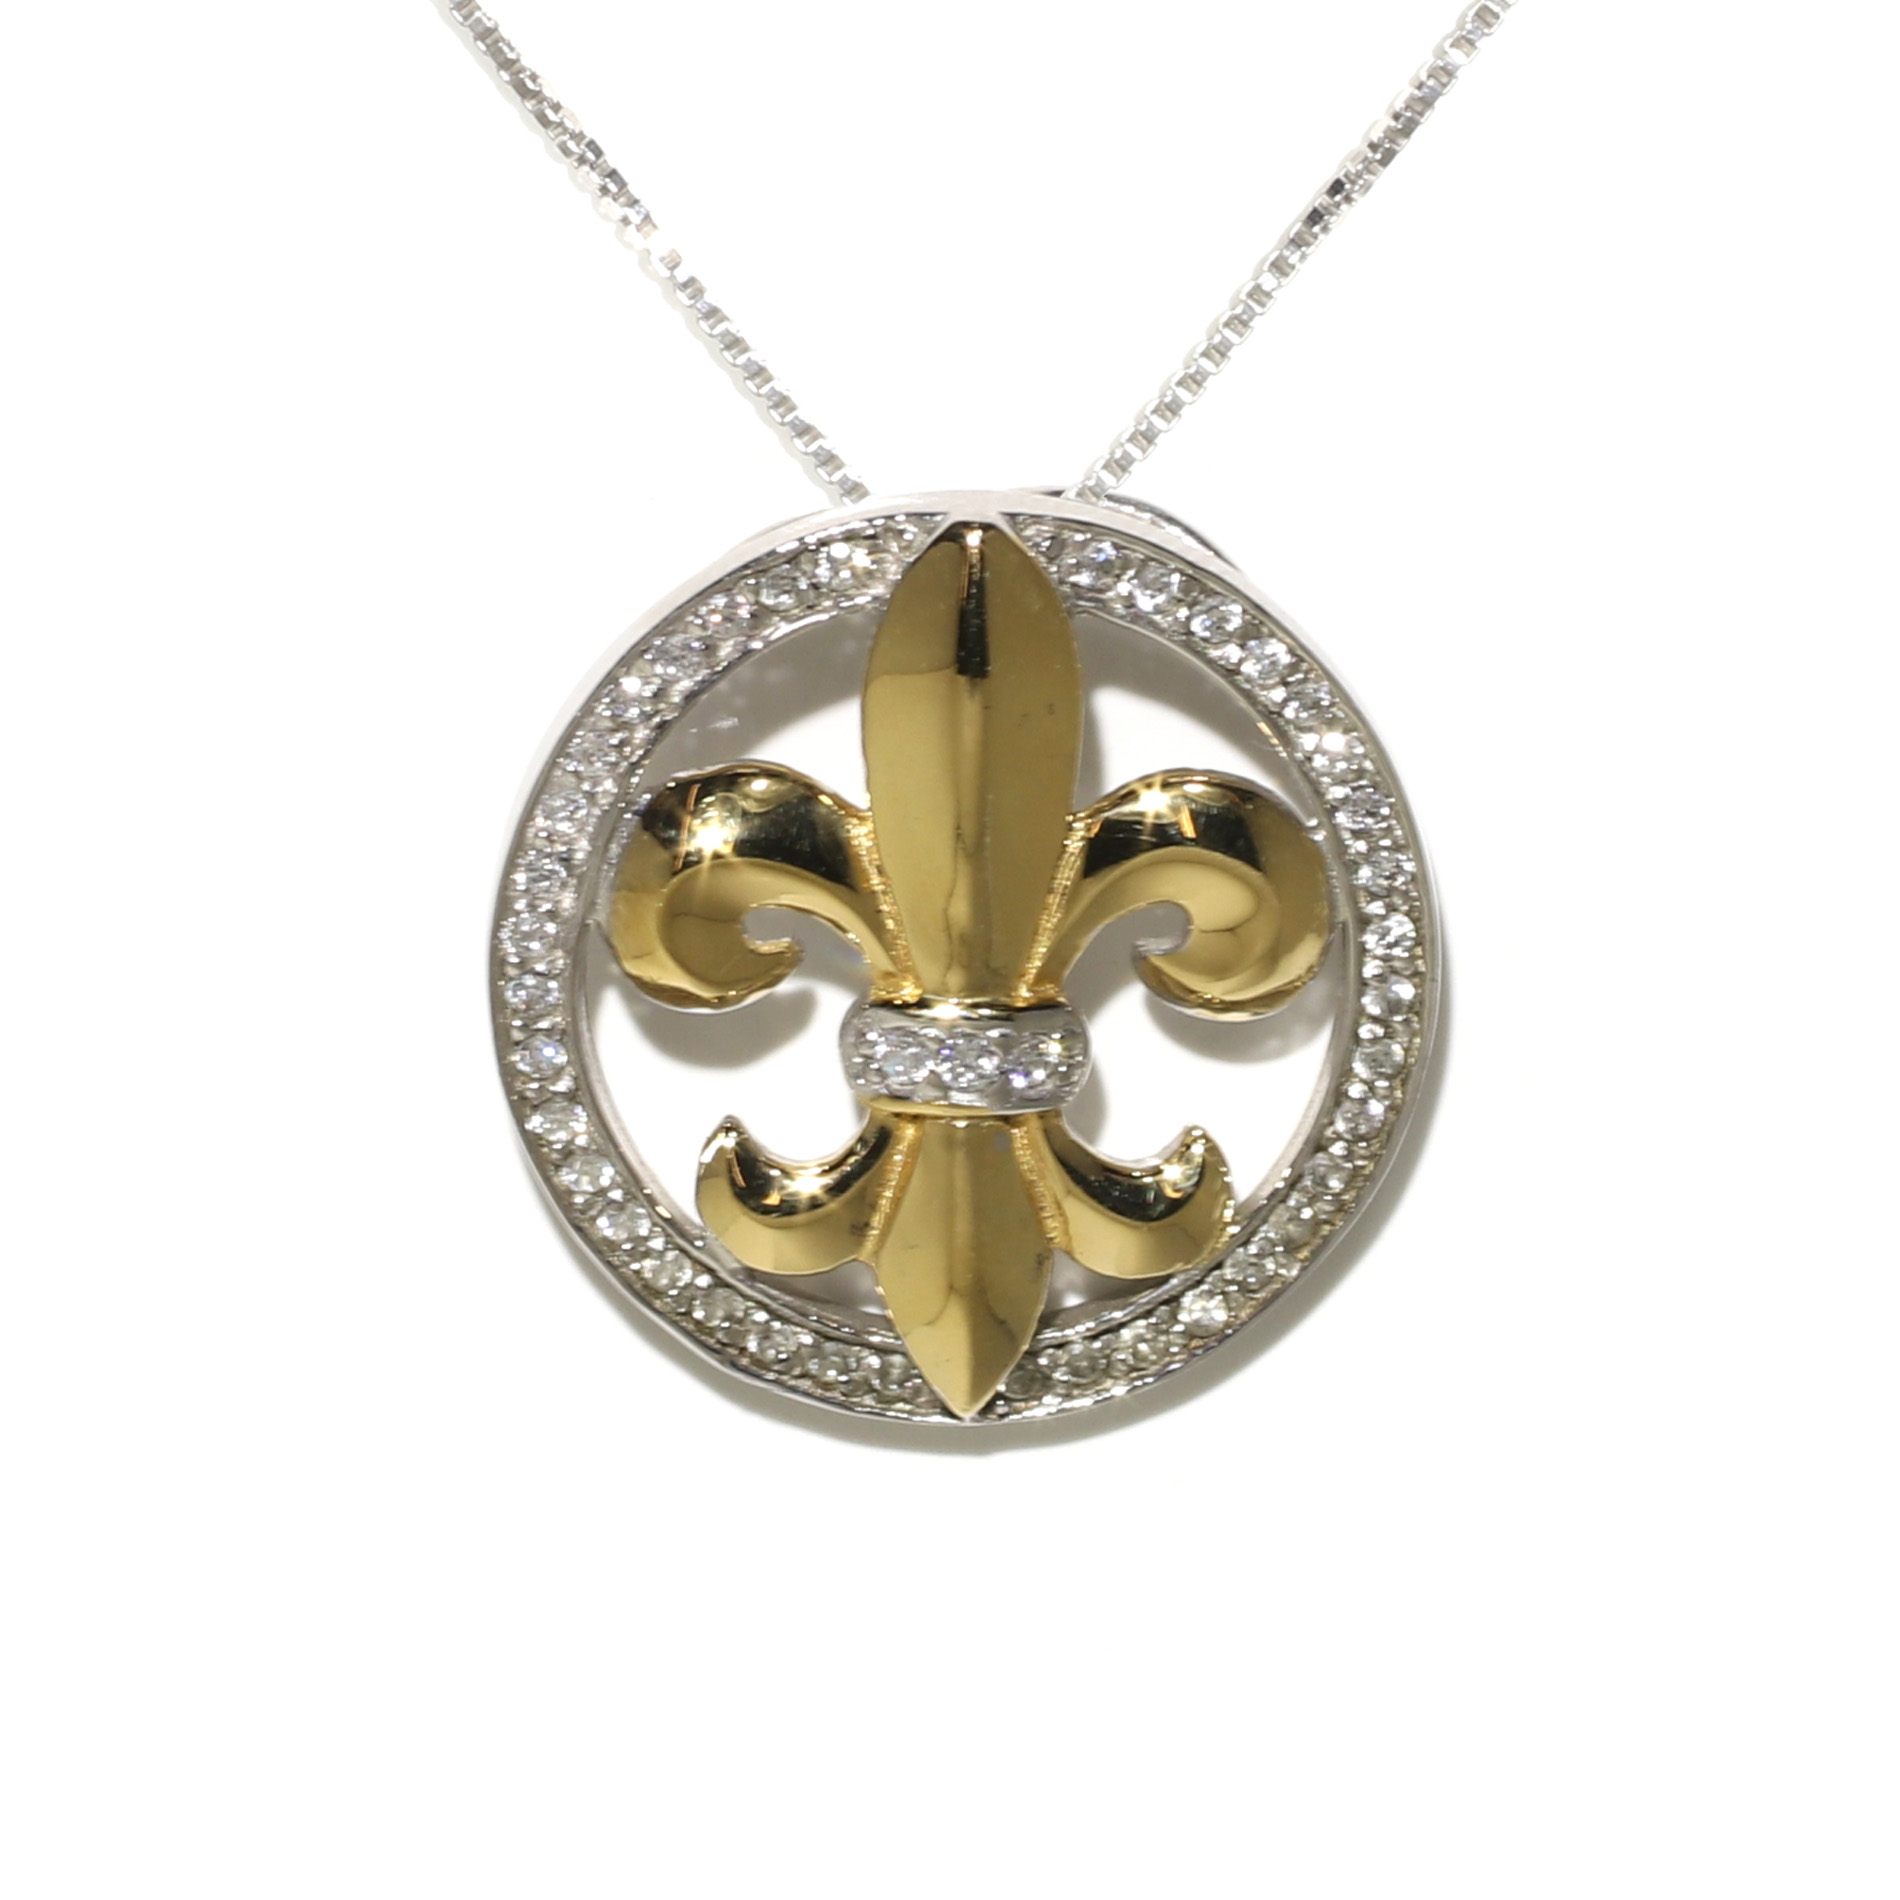 Tamara g designs two tone fleur de lis pendant image created by iconasys shutter stream aloadofball Image collections